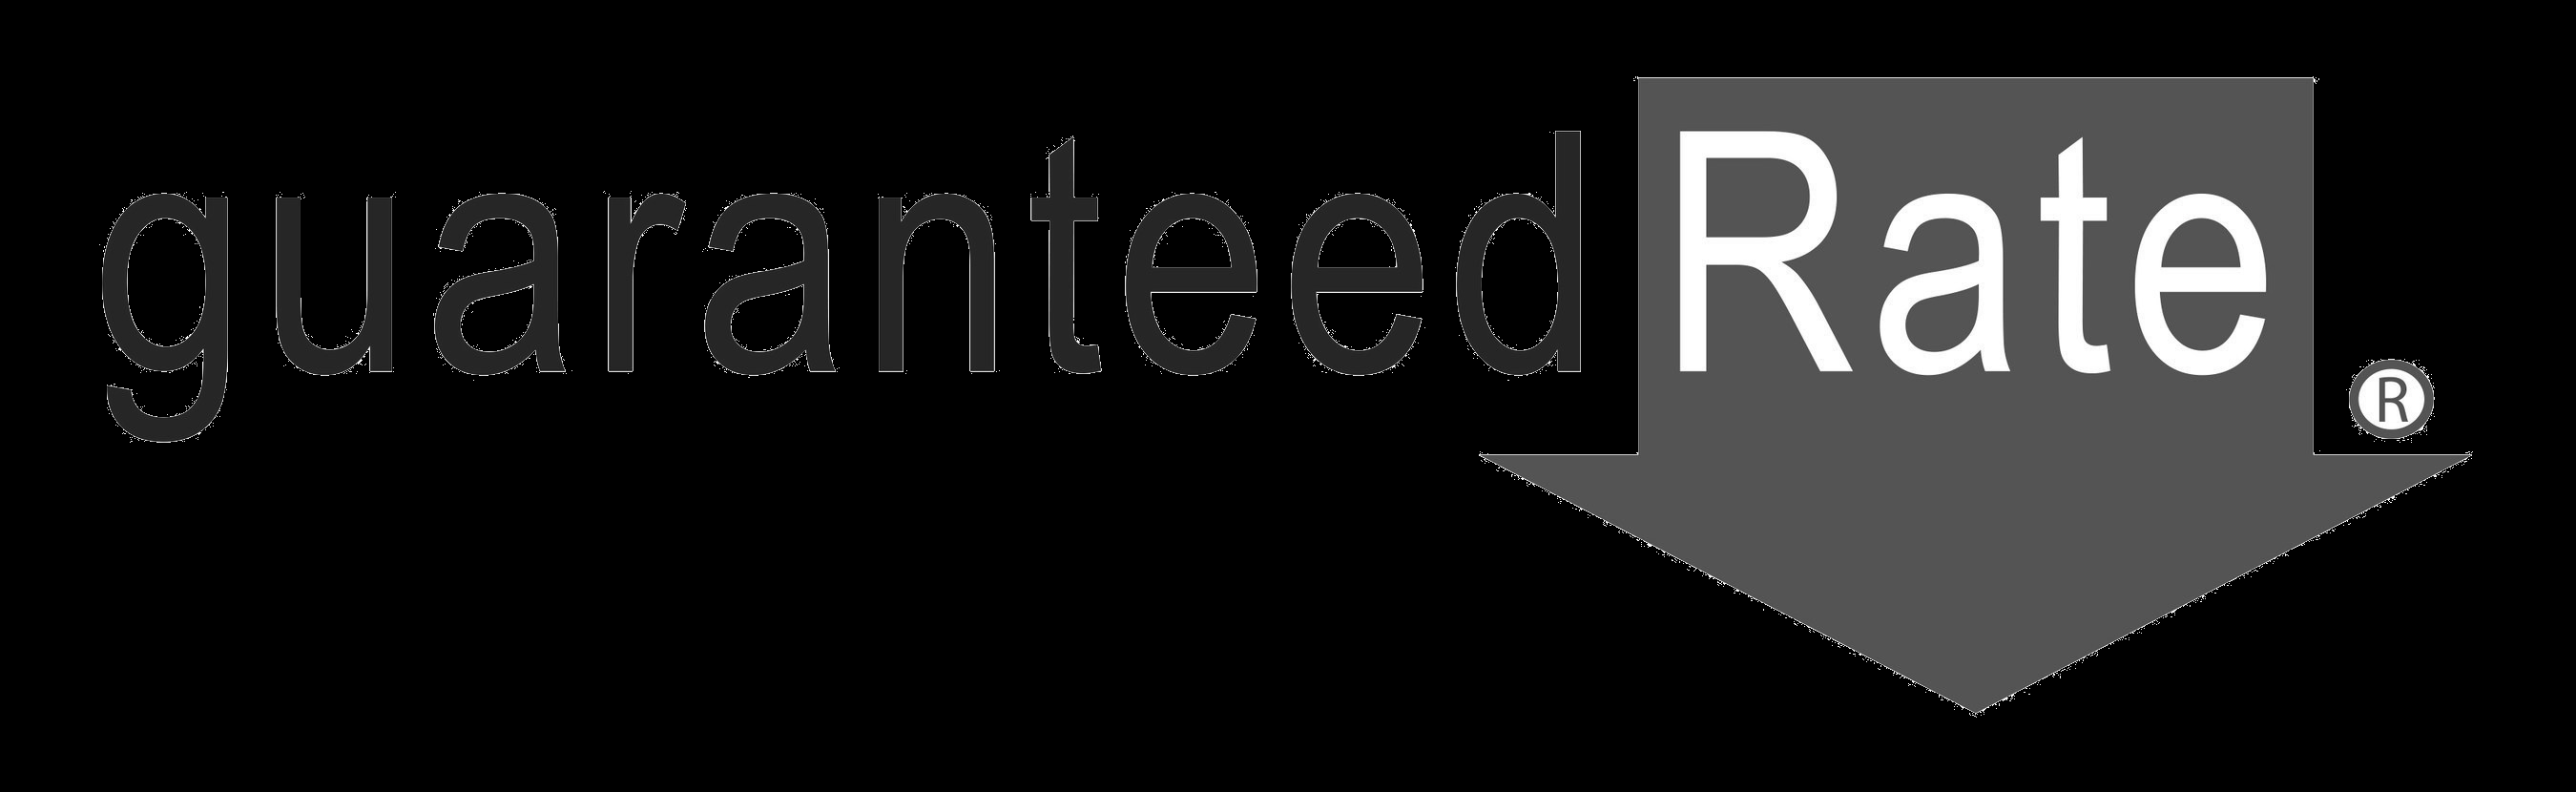 http://www.buyspringfieldnow.com/homes/wp-content/uploads/2021/06/Guaranteed_Rate_Logo.png